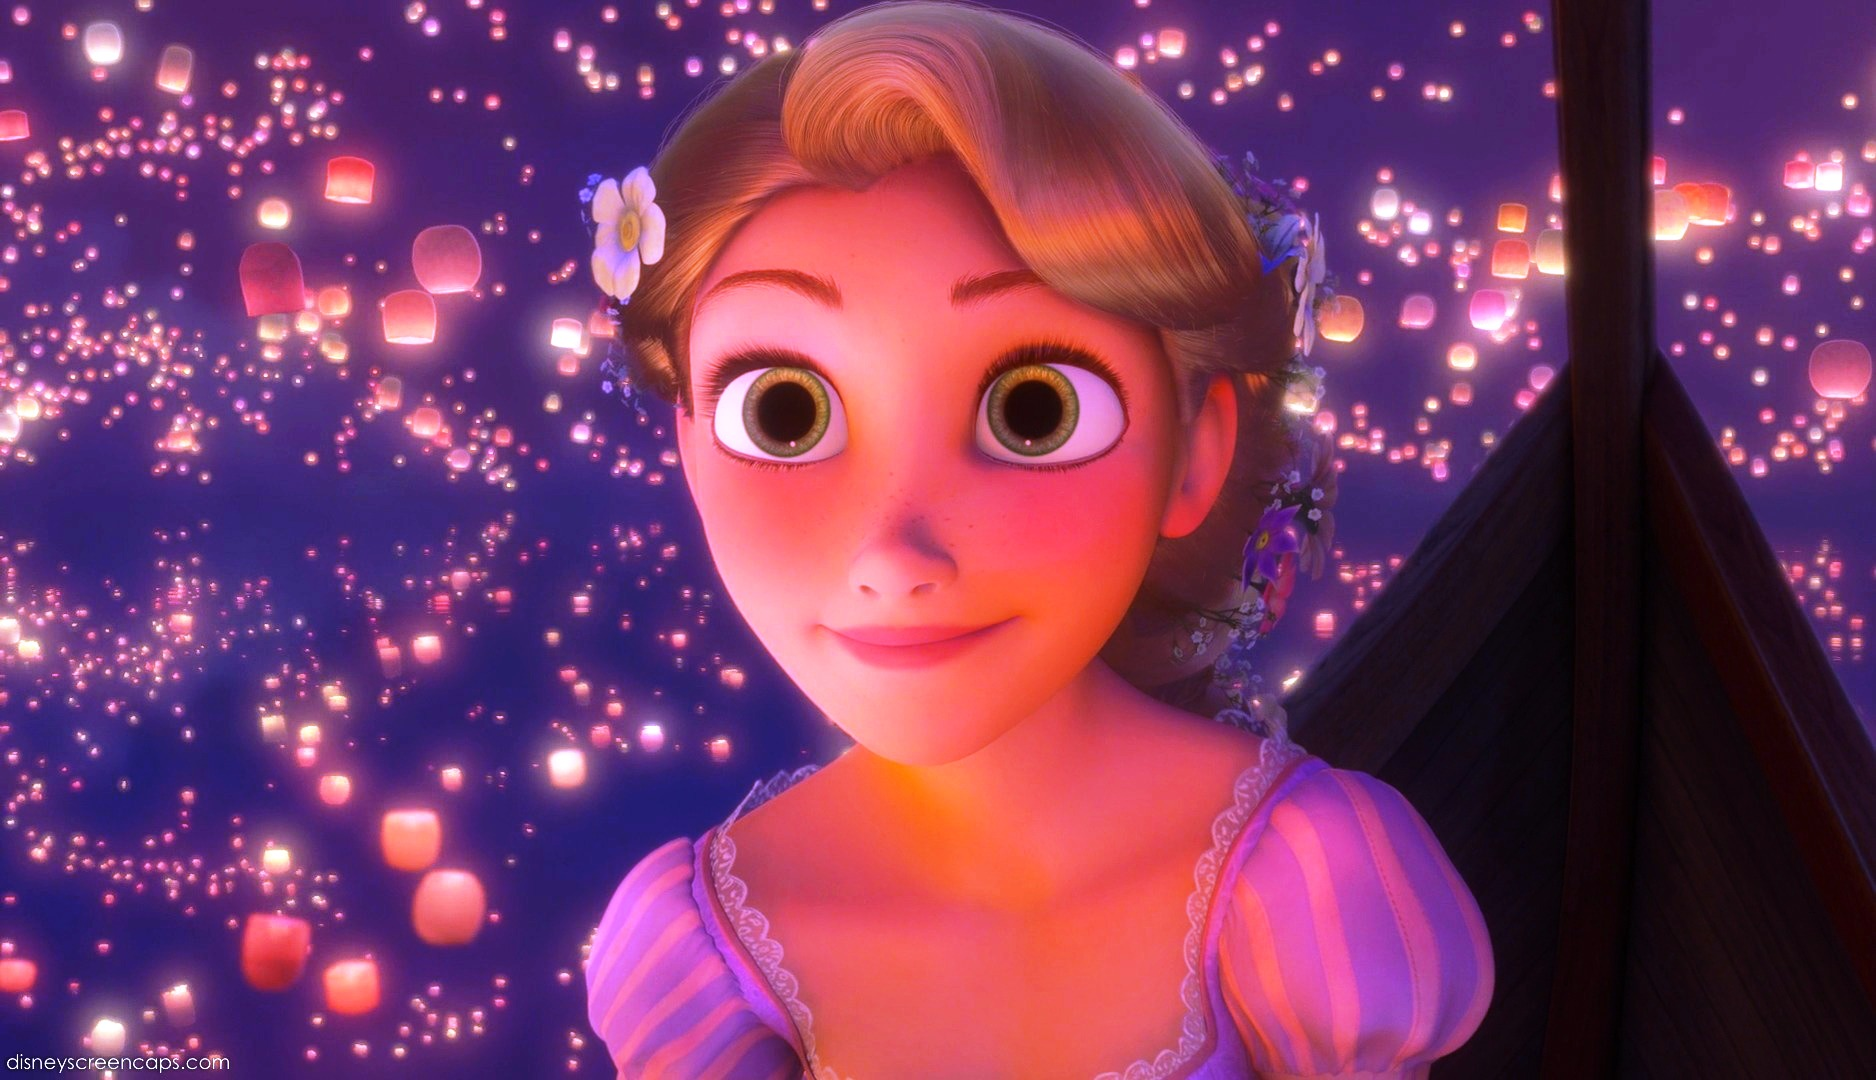 IMD:81 - Tangled HD Images - 45 Free Large Images